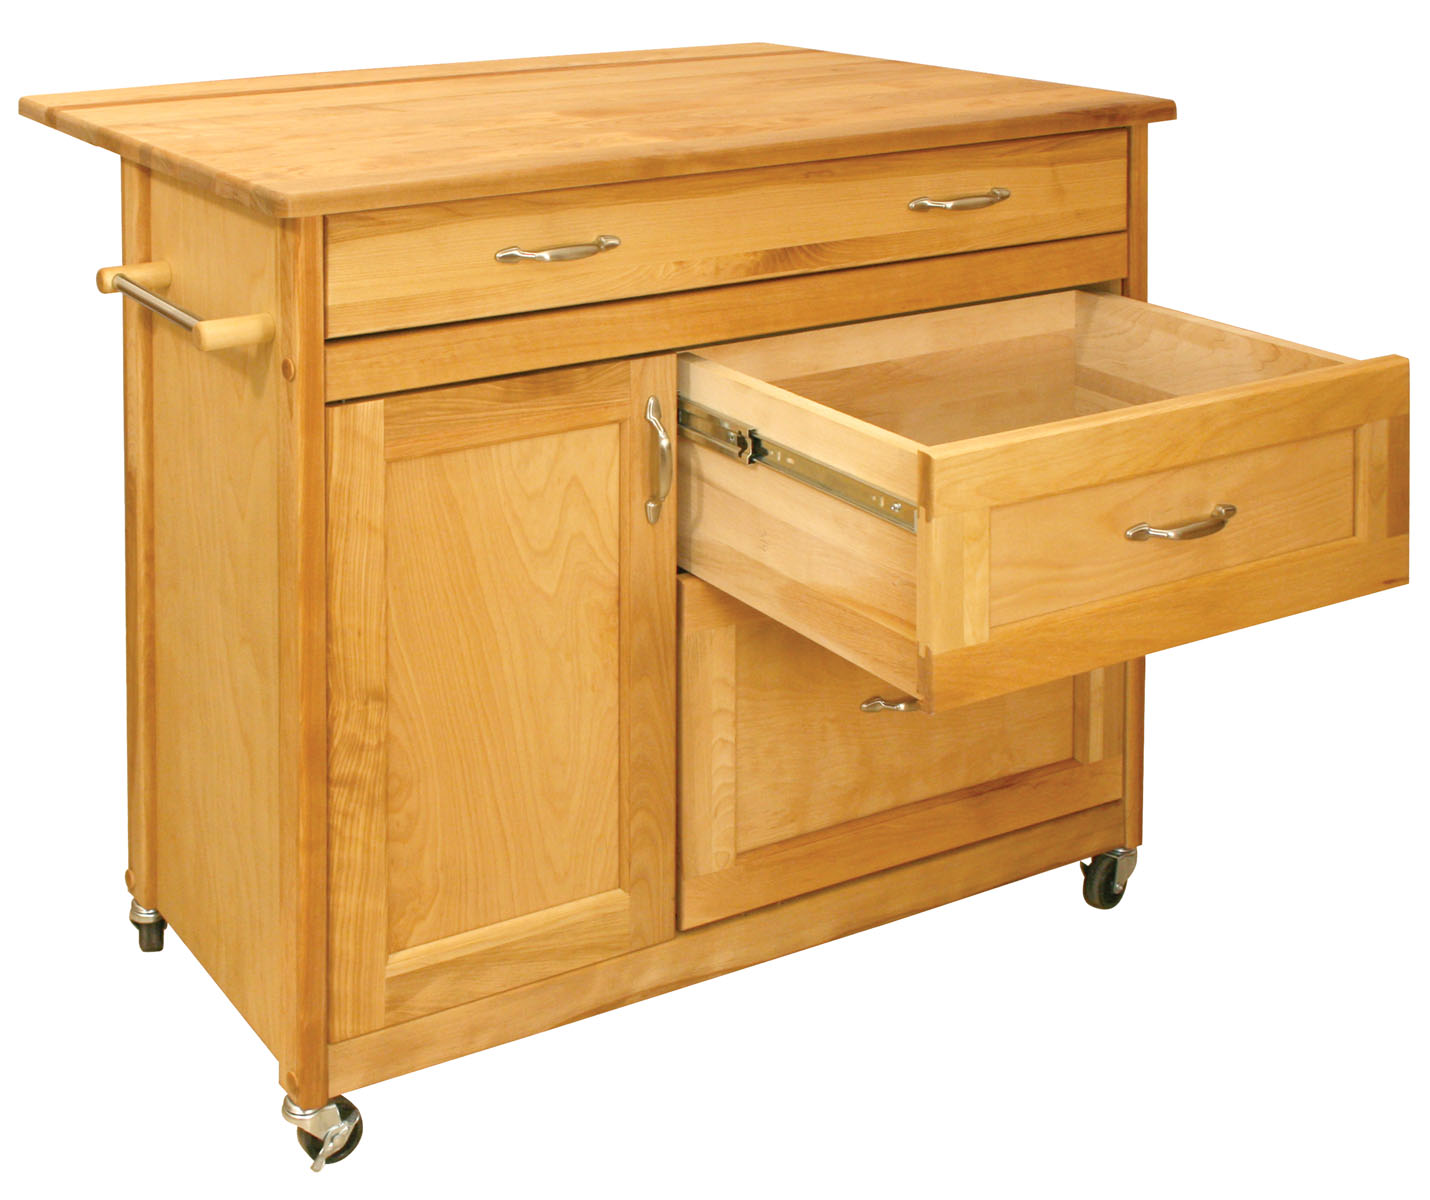 Catskill Mid-Sized Drawer Island - 40